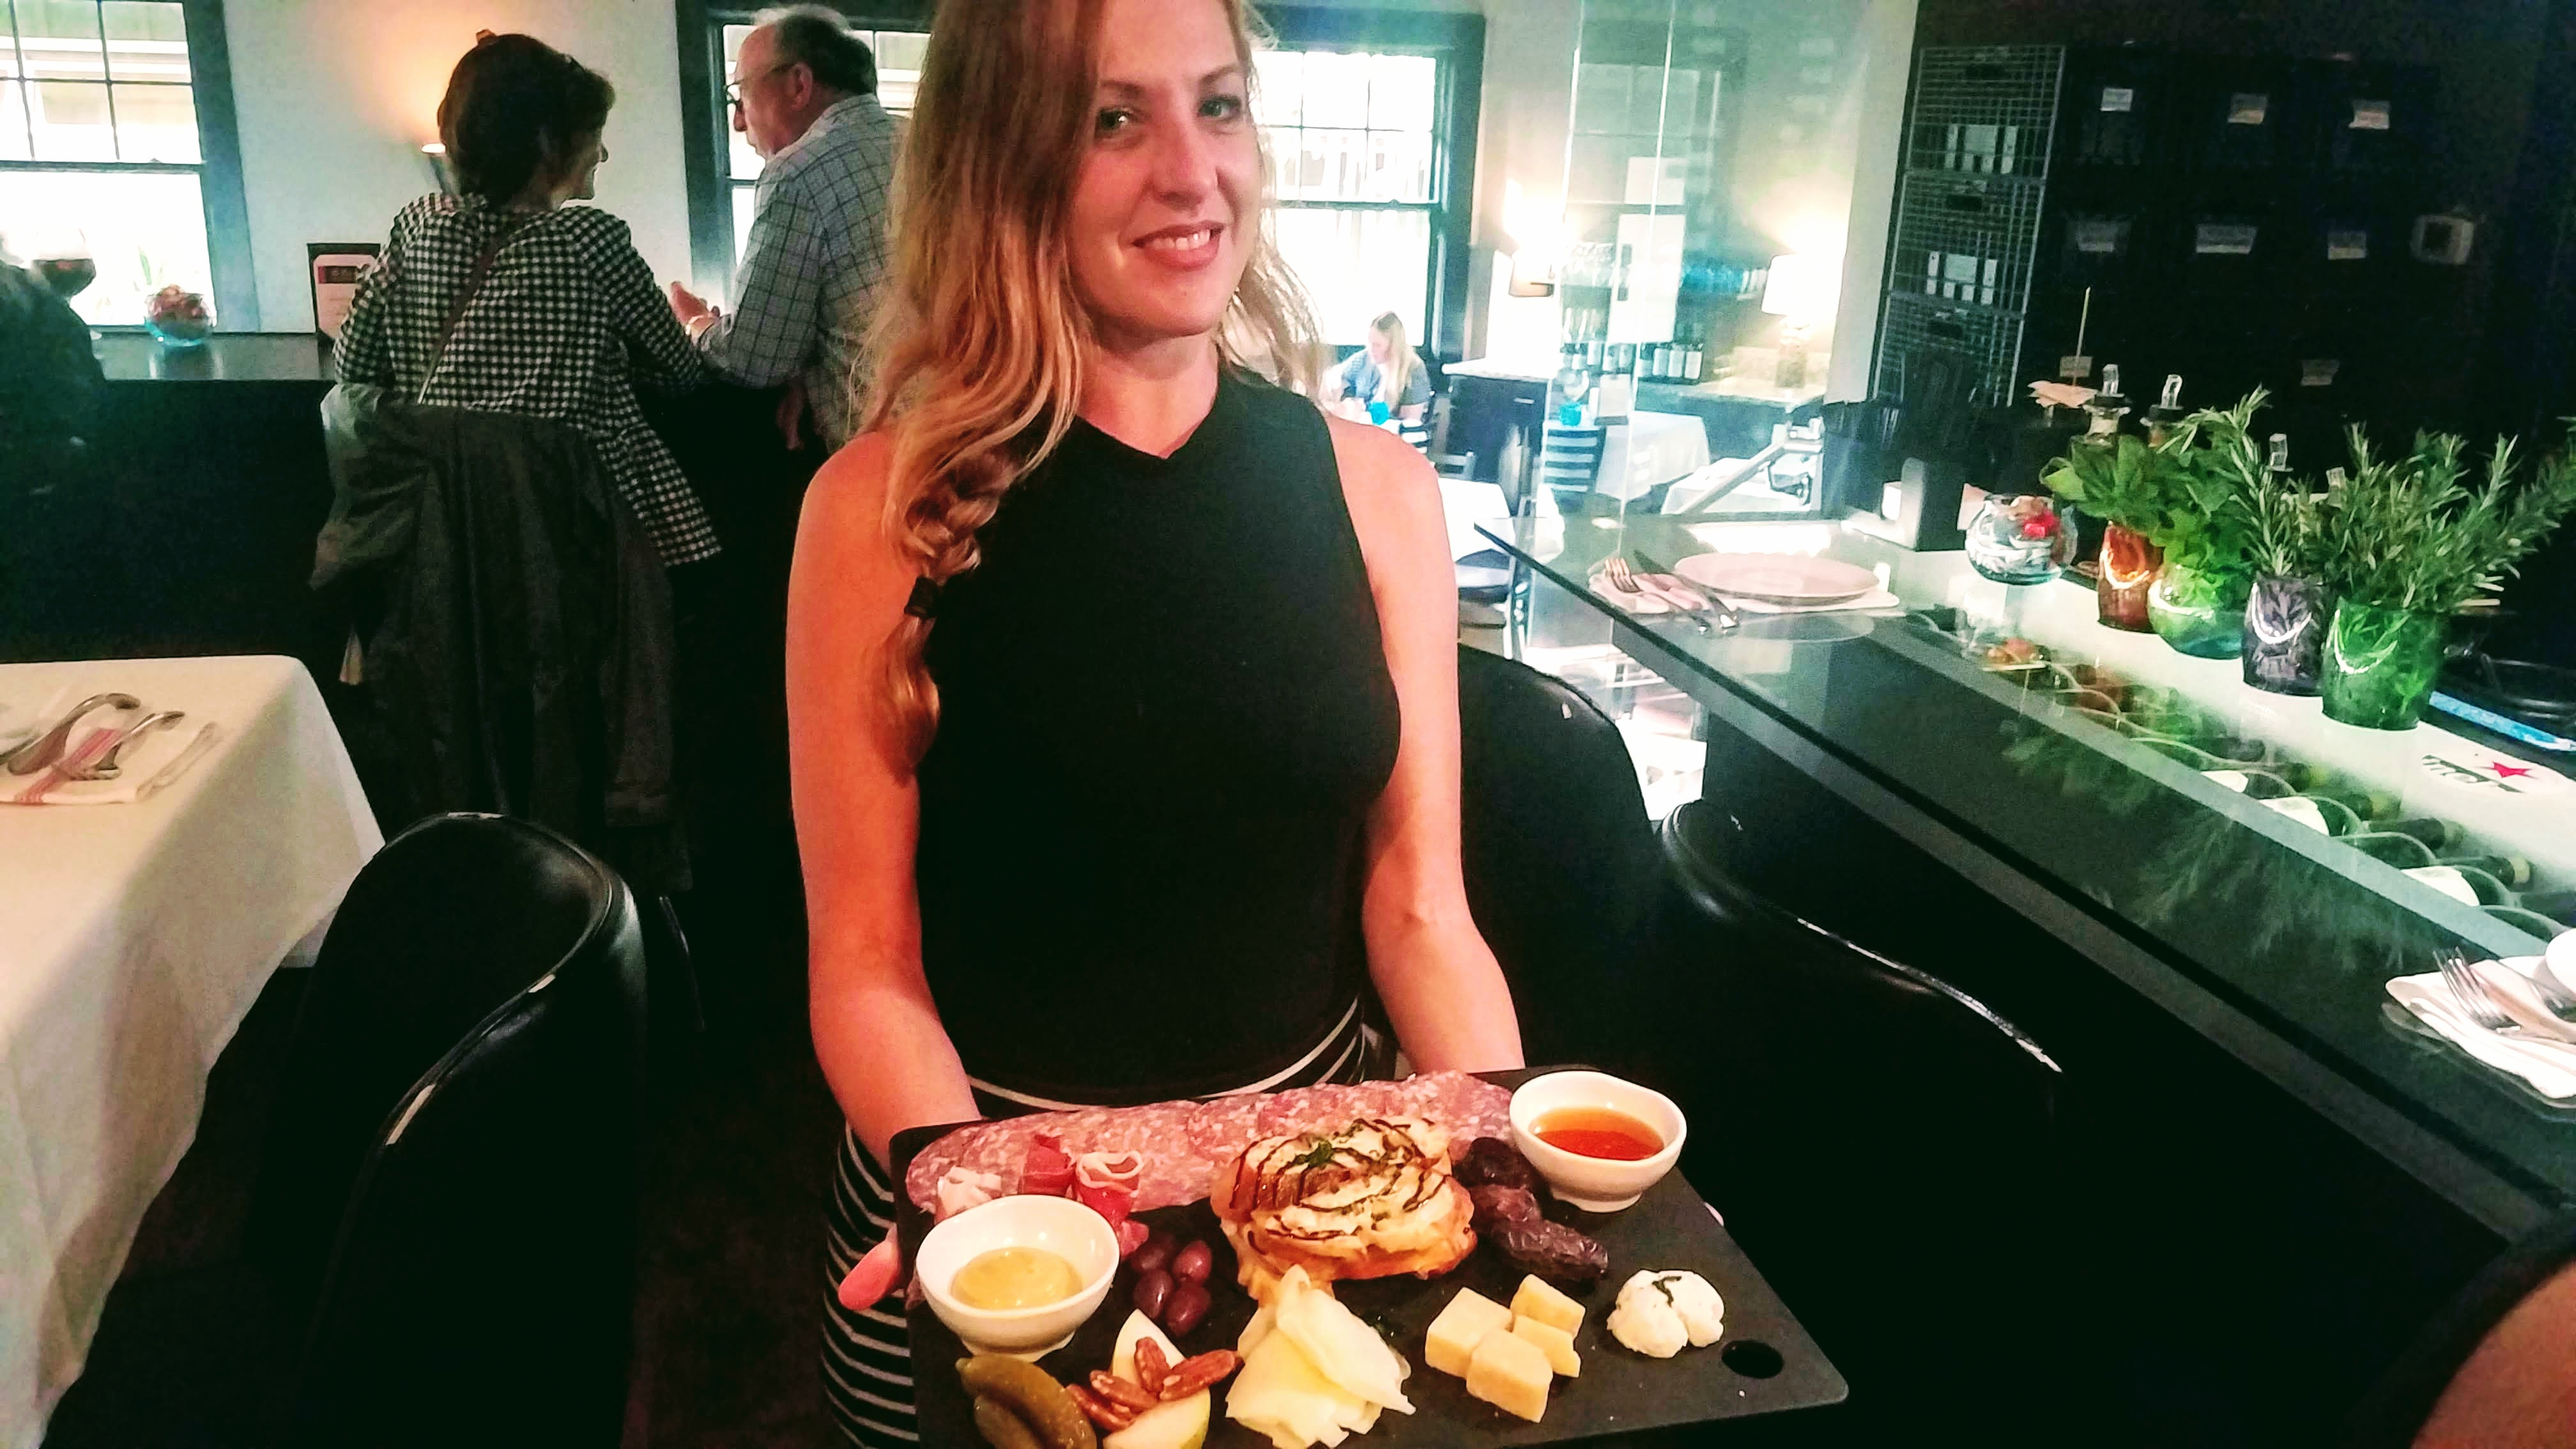 sk laverty with charcuterie cheese tray at pour house kapalua maui hawaii